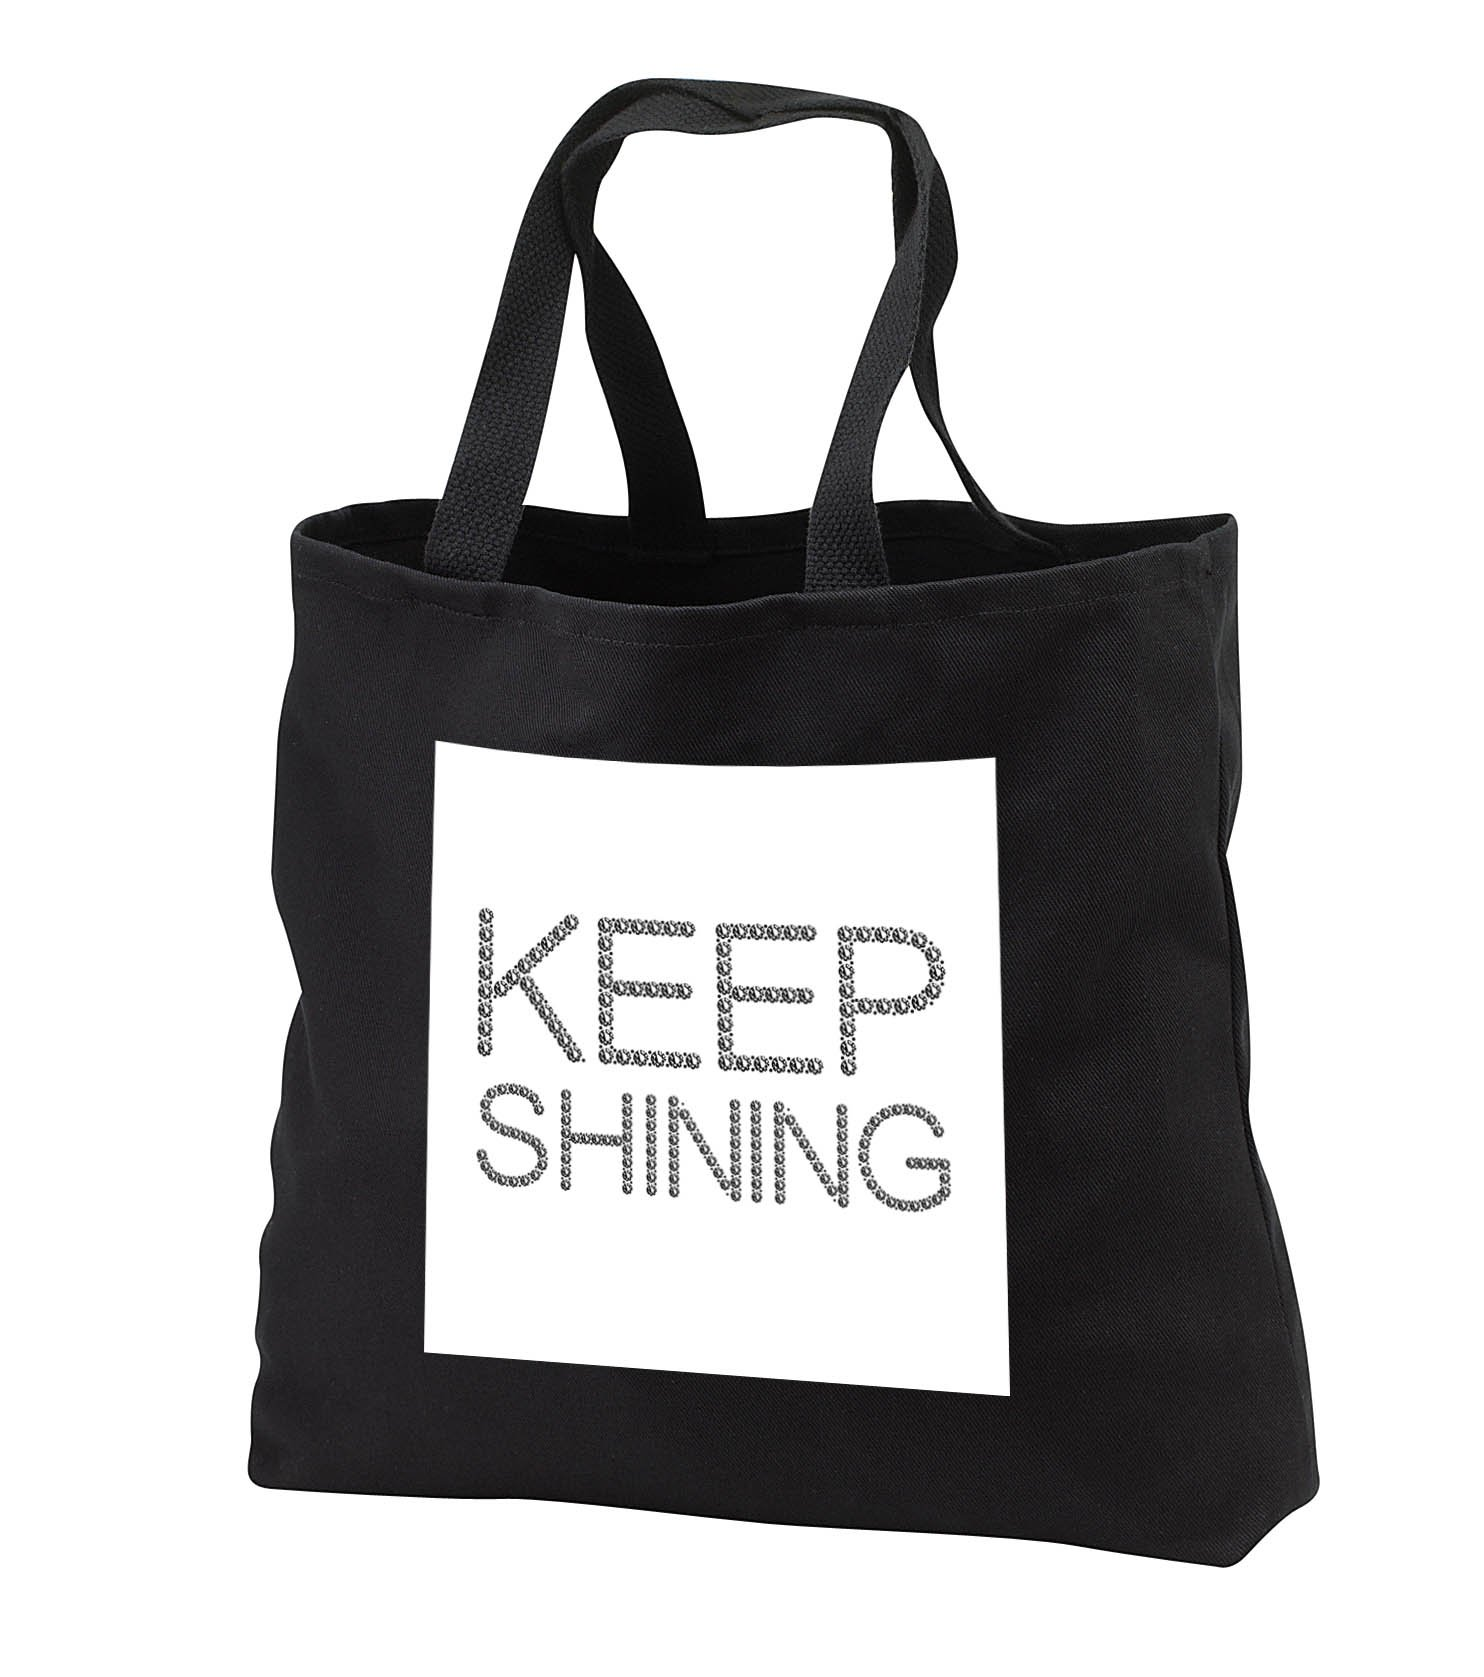 Alexis Design - Typography Diamond - Funny fine text Keep Shining. Diamond shaped design. Black on white - Tote Bags - Black Tote Bag 14w x 14h x 3d (tb_286729_1)